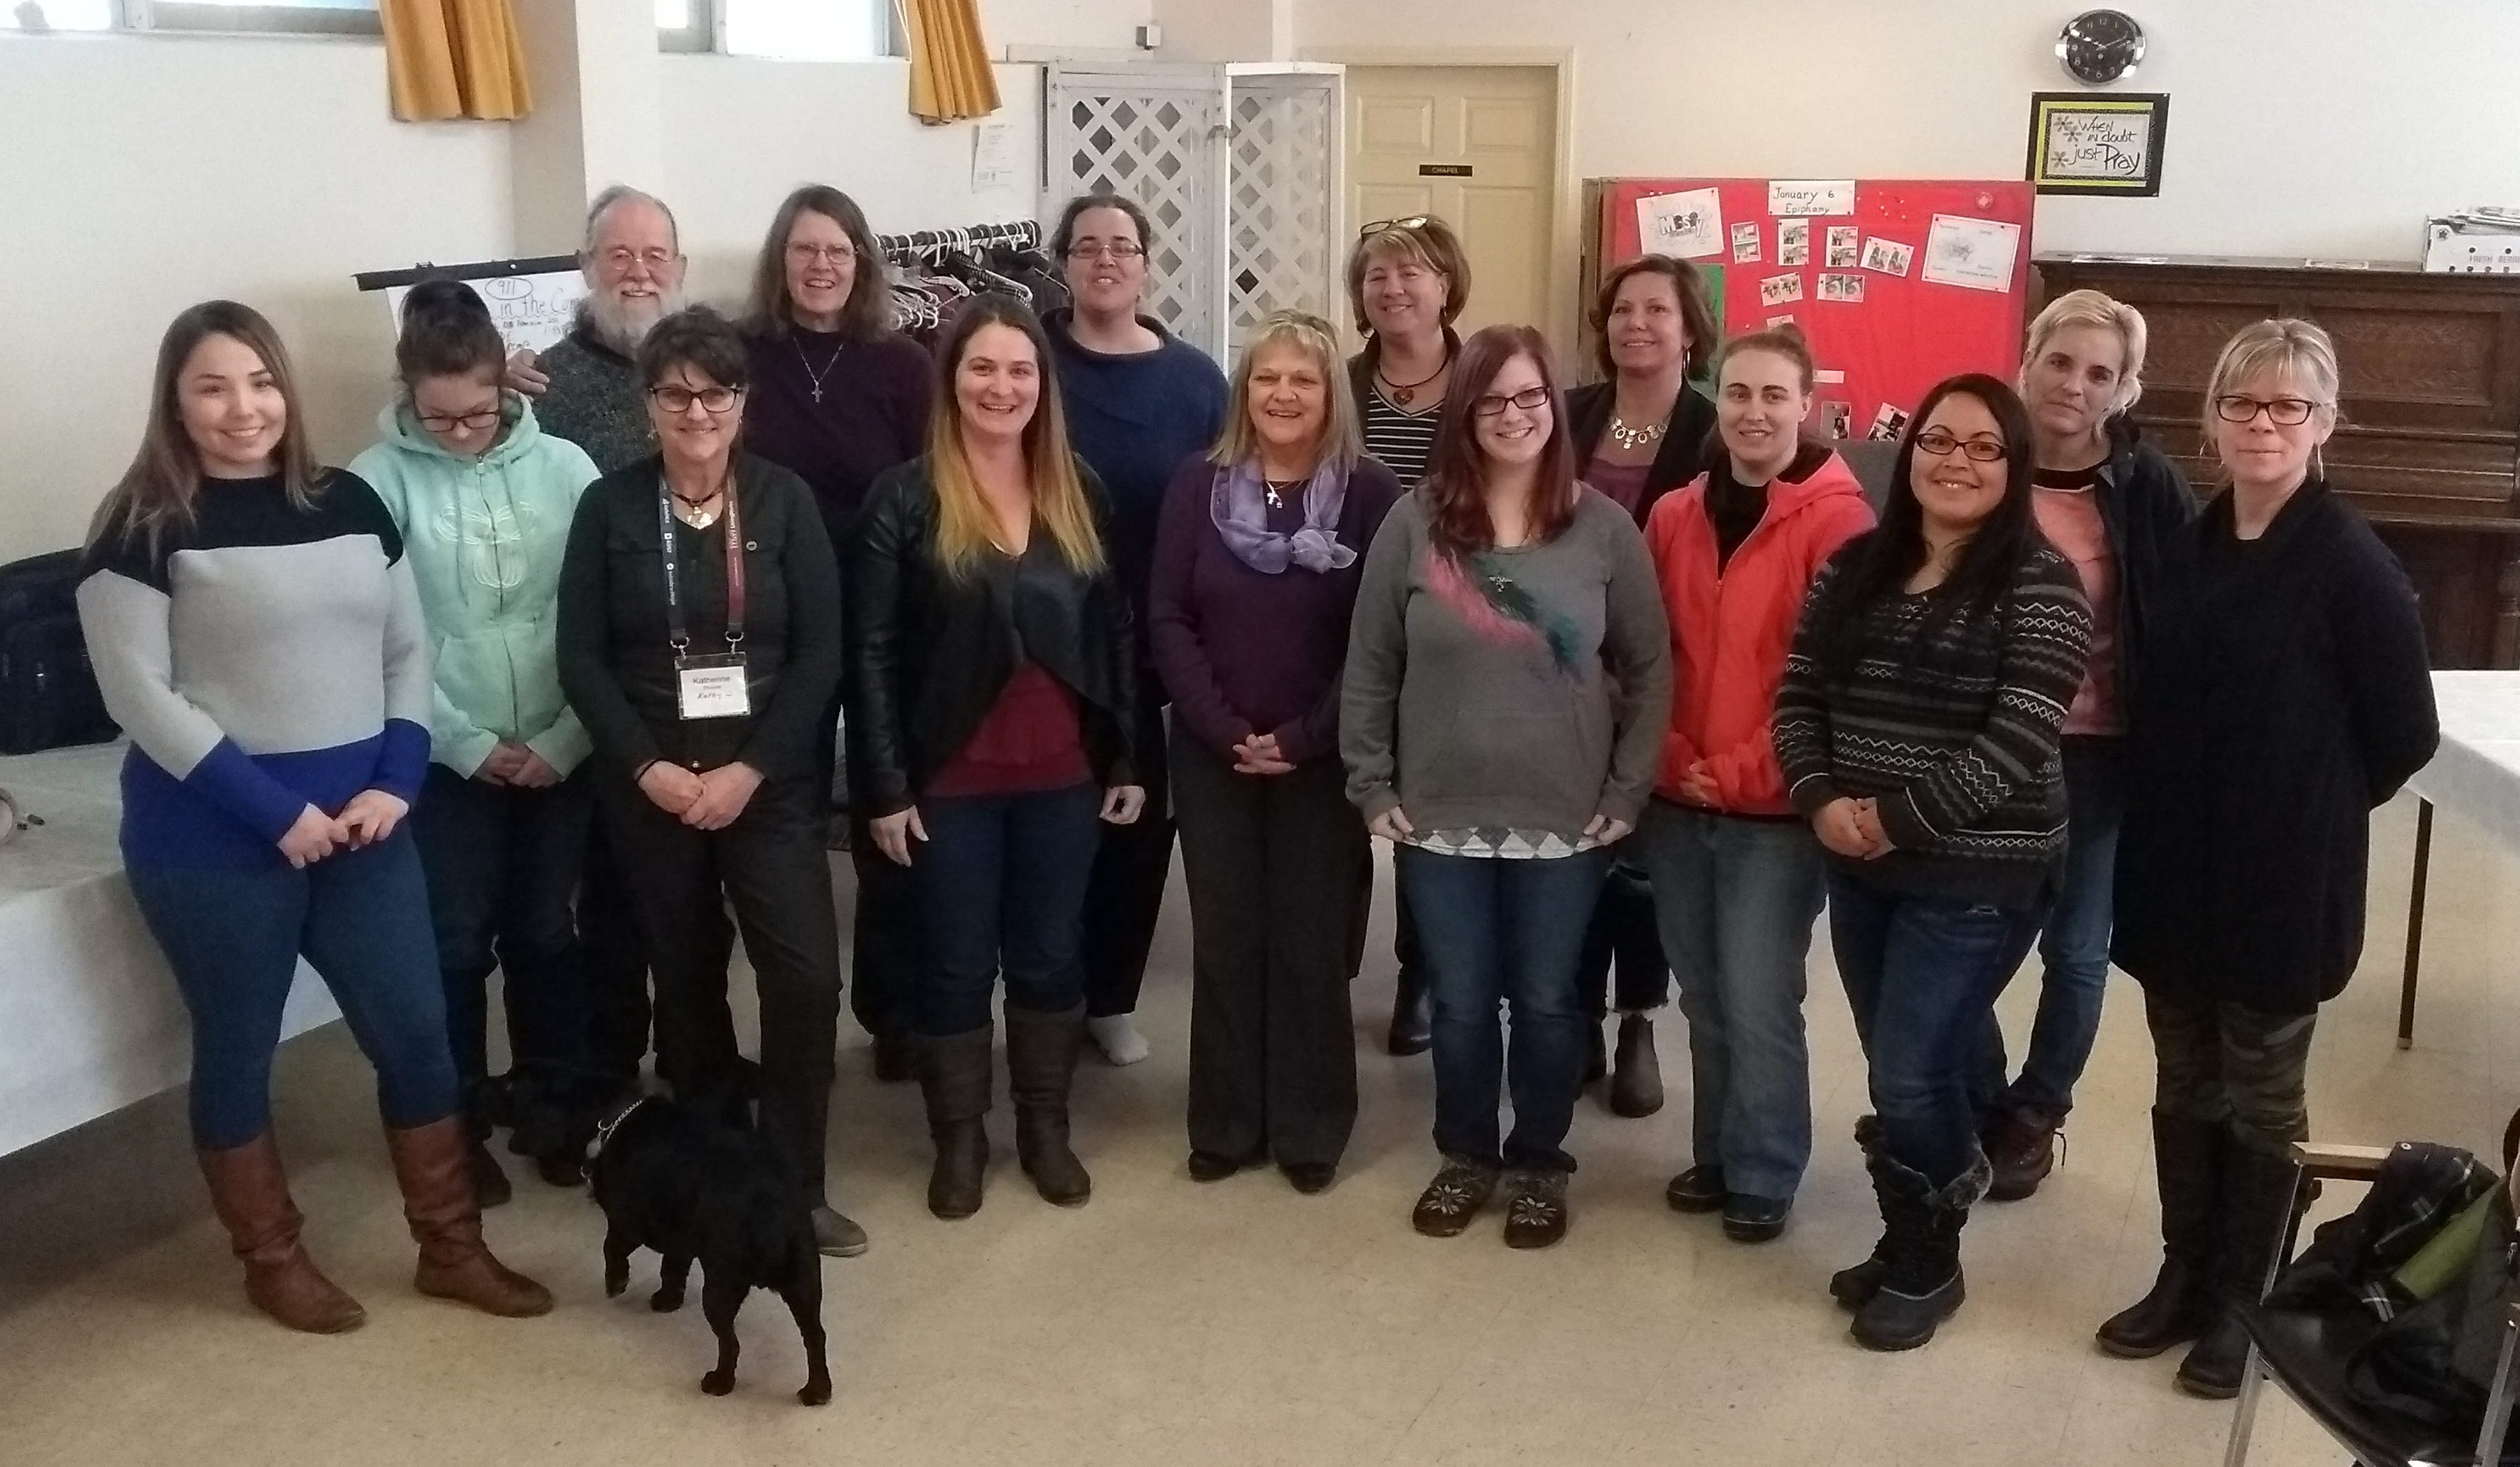 Some participants of ASIST workshop in William Lakes. Photo by Rev. Keith Dobyns